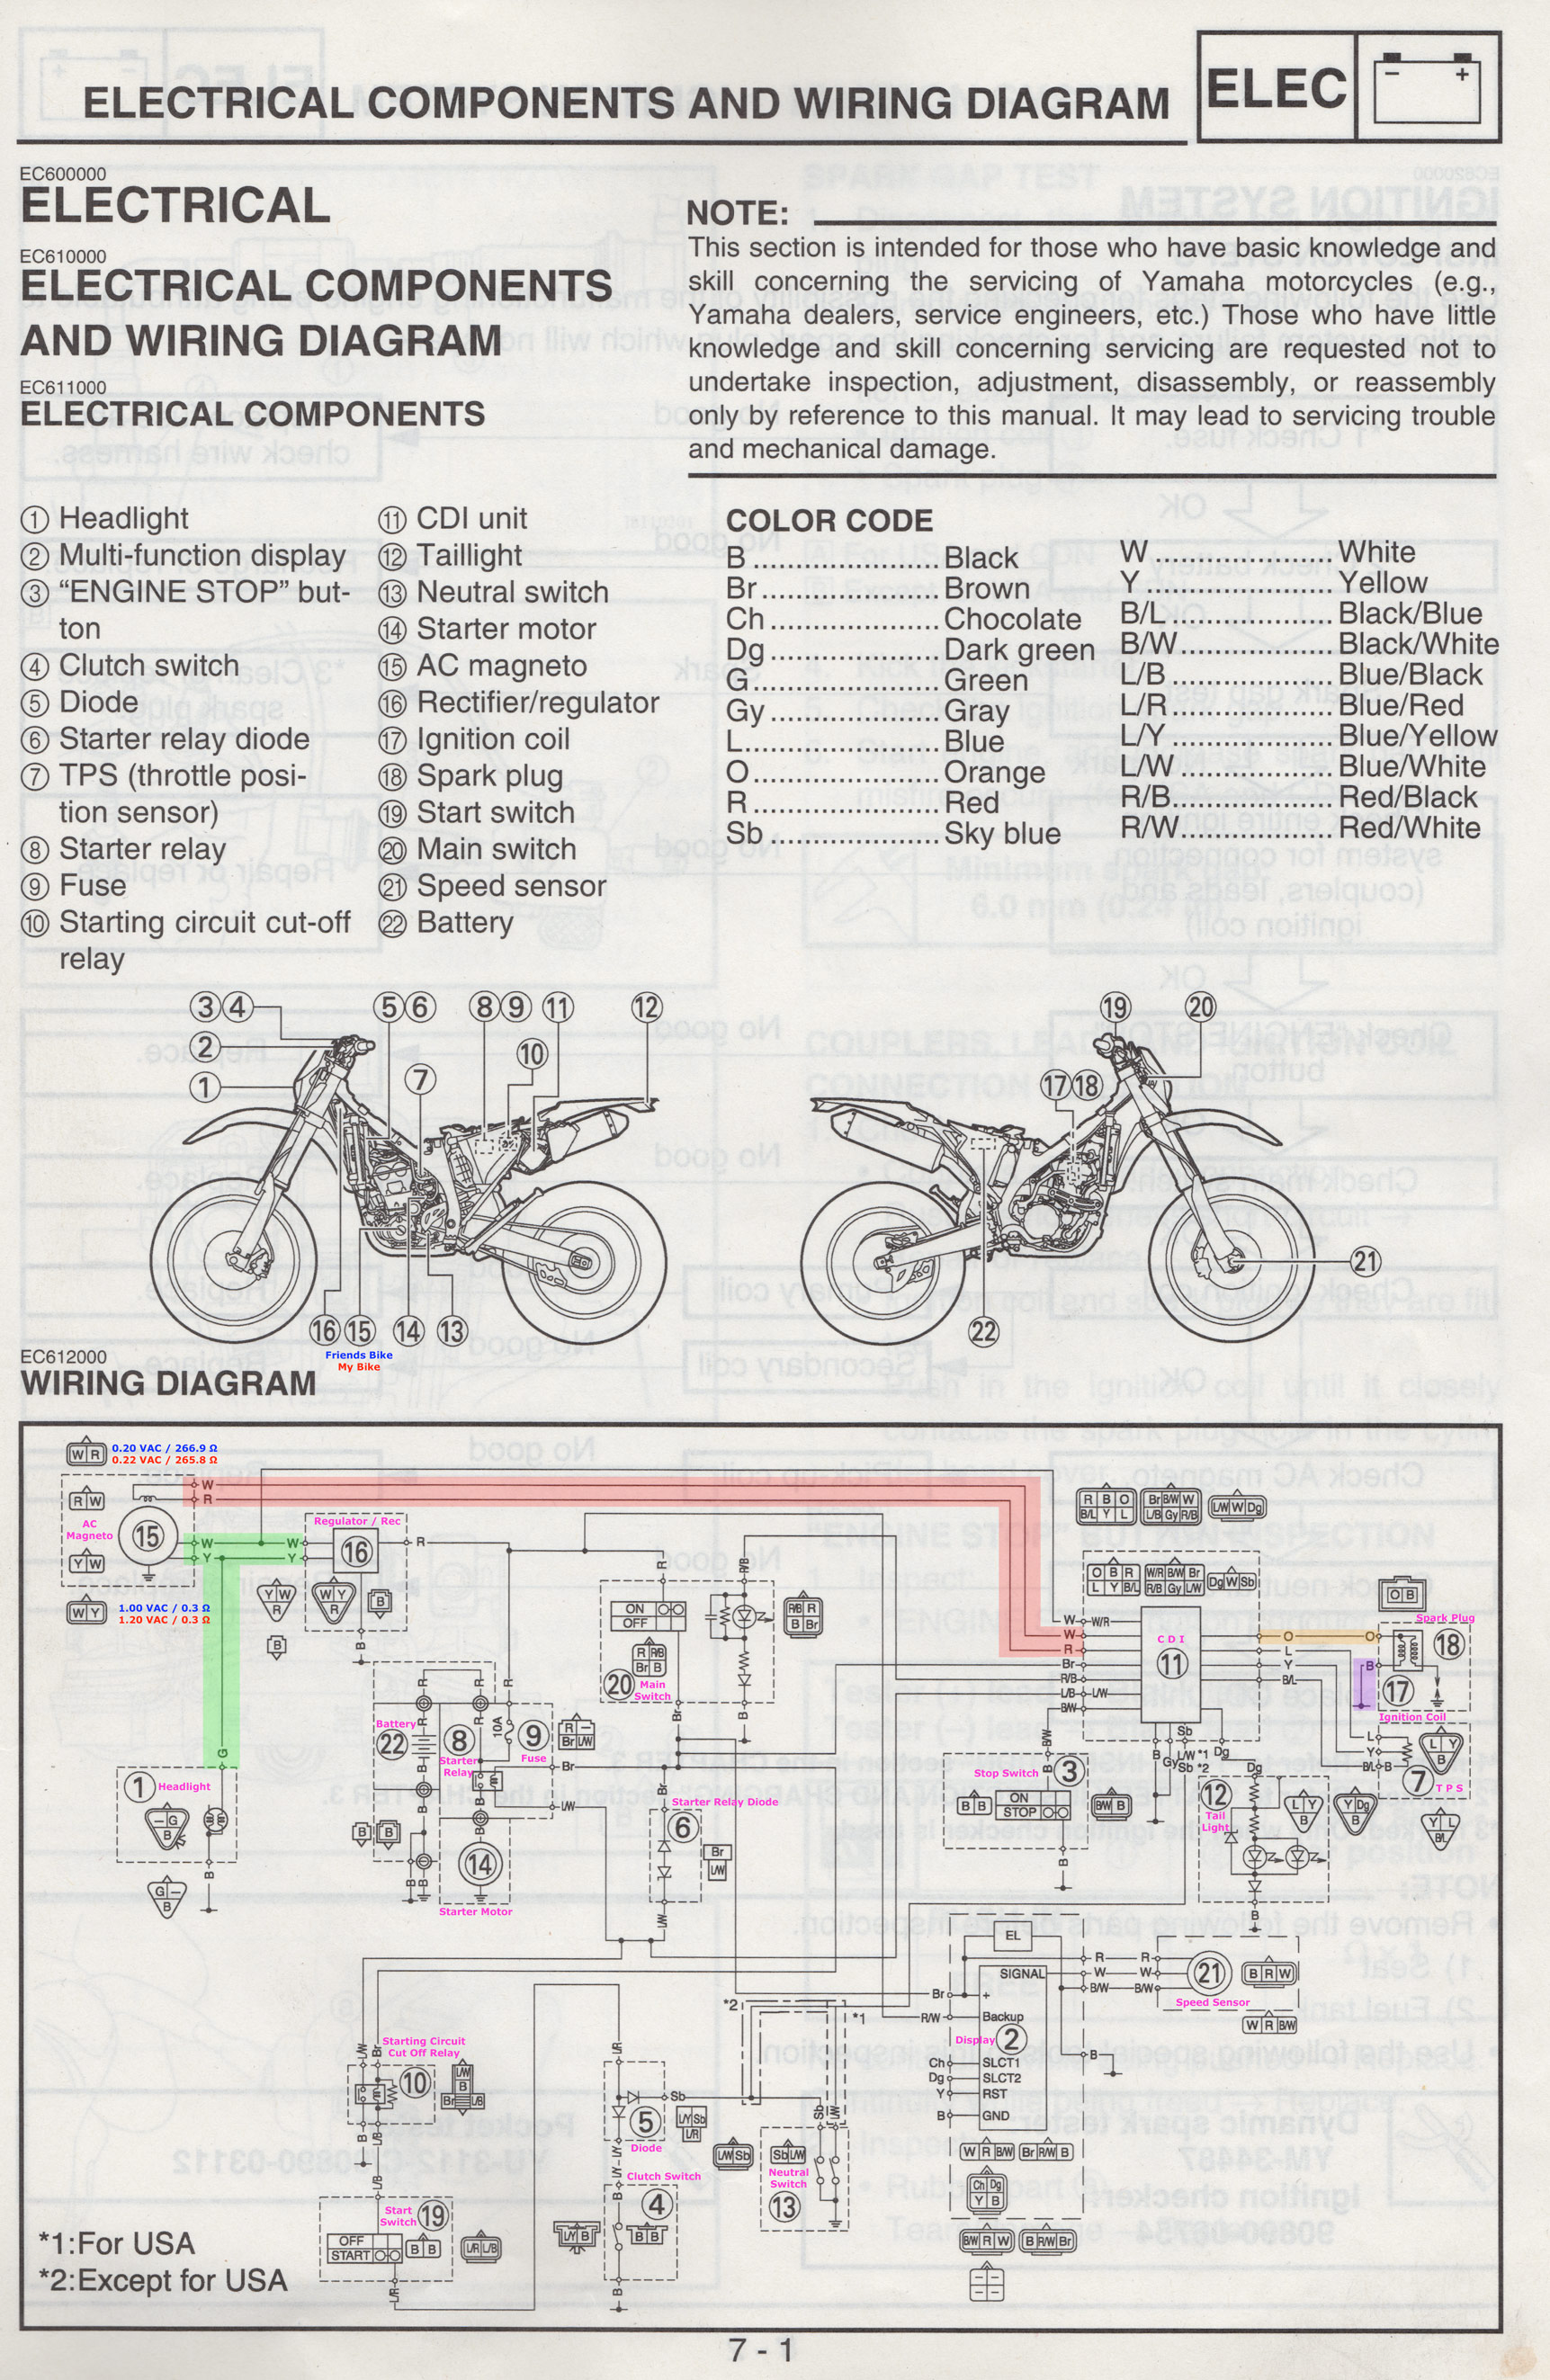 Kawasaki Electrical Wiring Diagram Library 2003 Z1000 2012 Wr450f 26 Images Fury